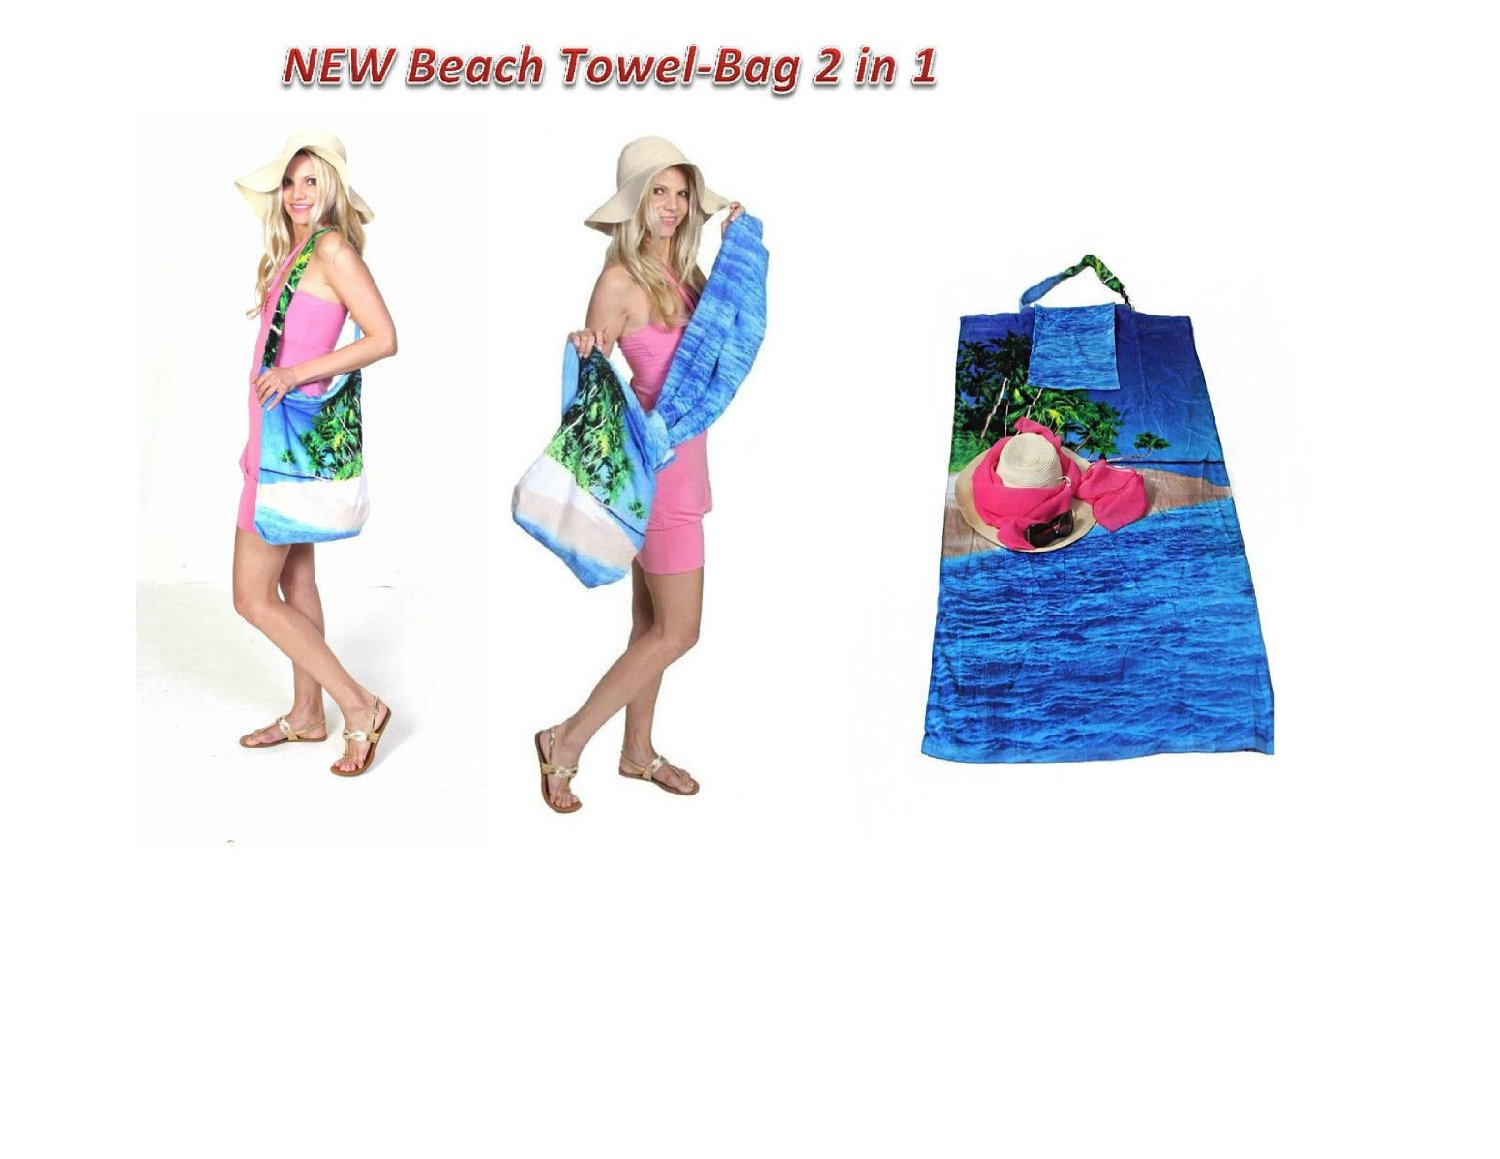 2 in 1 Beach Towel Bag,Beach Blanket, Tote Bag, Yoga Towel, Pool towel